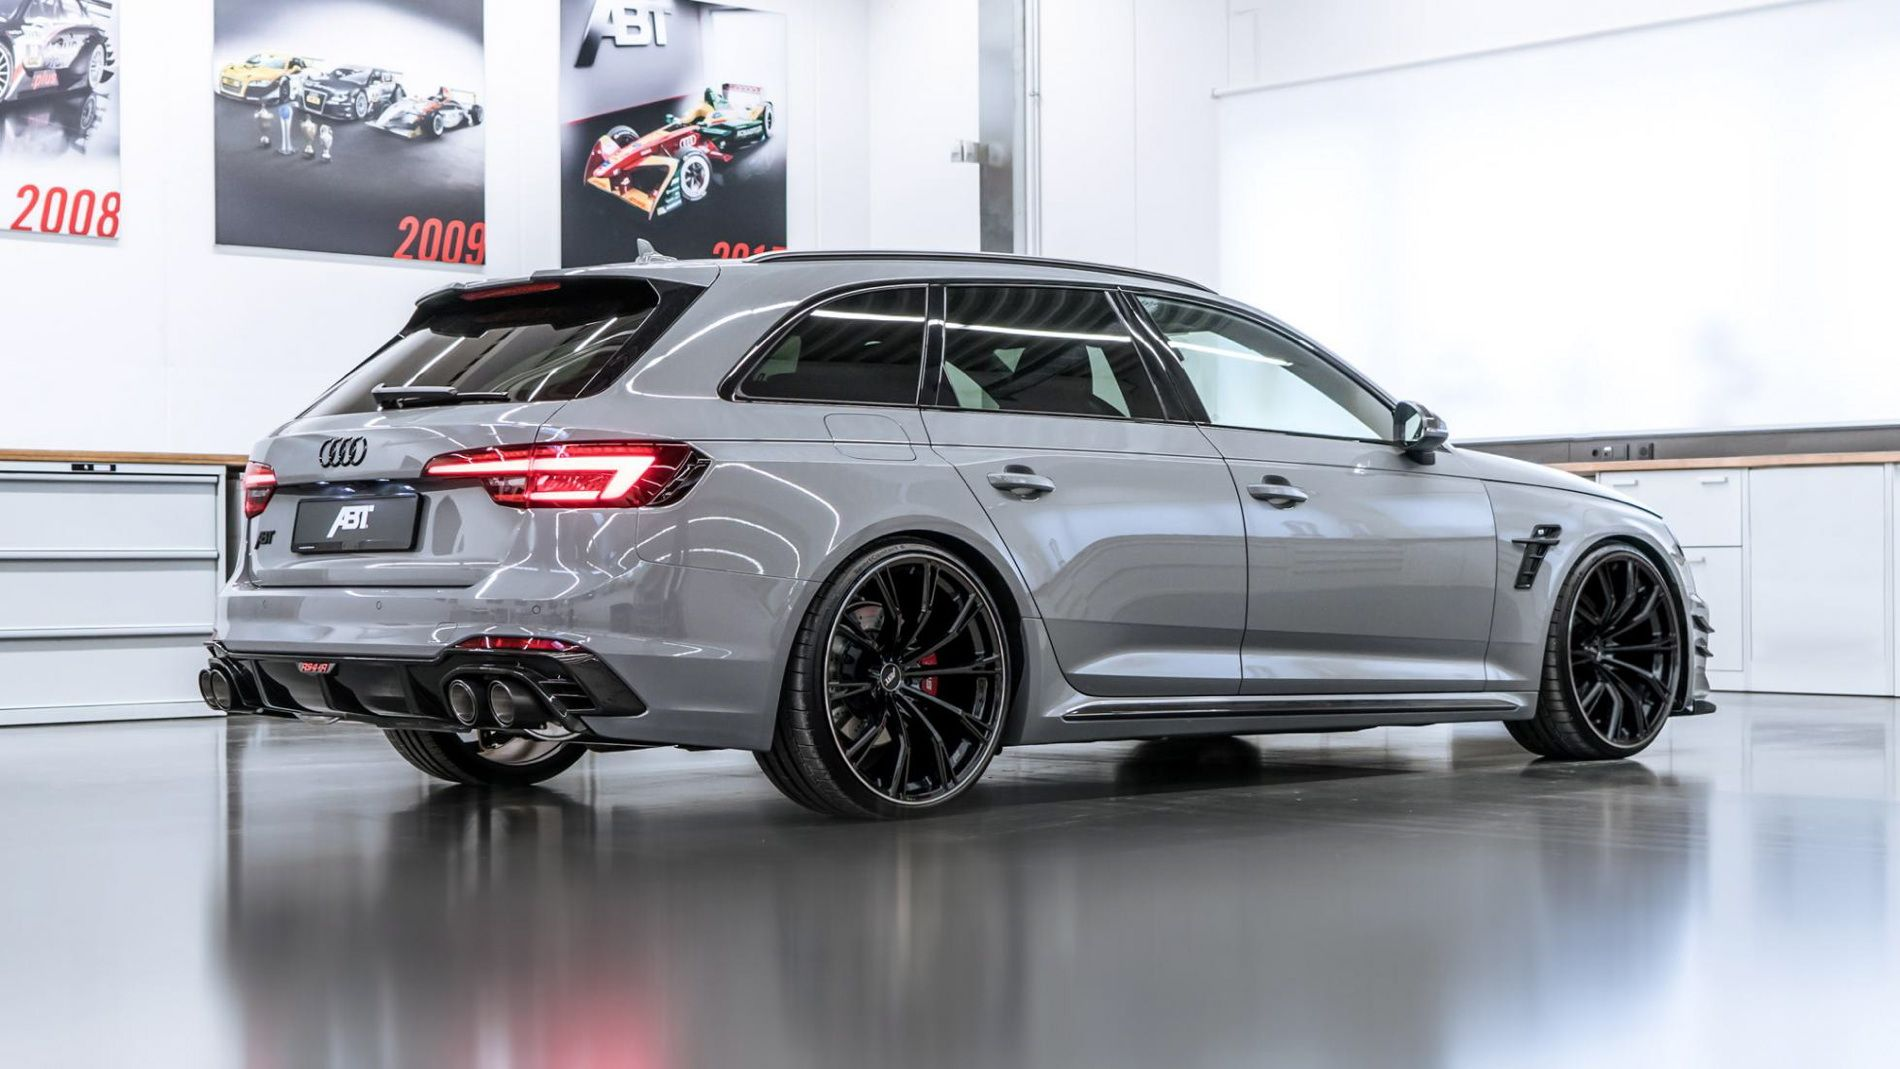 2018 Abt Audi Rs4 R Avant My Dream Grocery Getter Is Any Fast Wagon Posted By Pfulmtl Cars Motorcycles